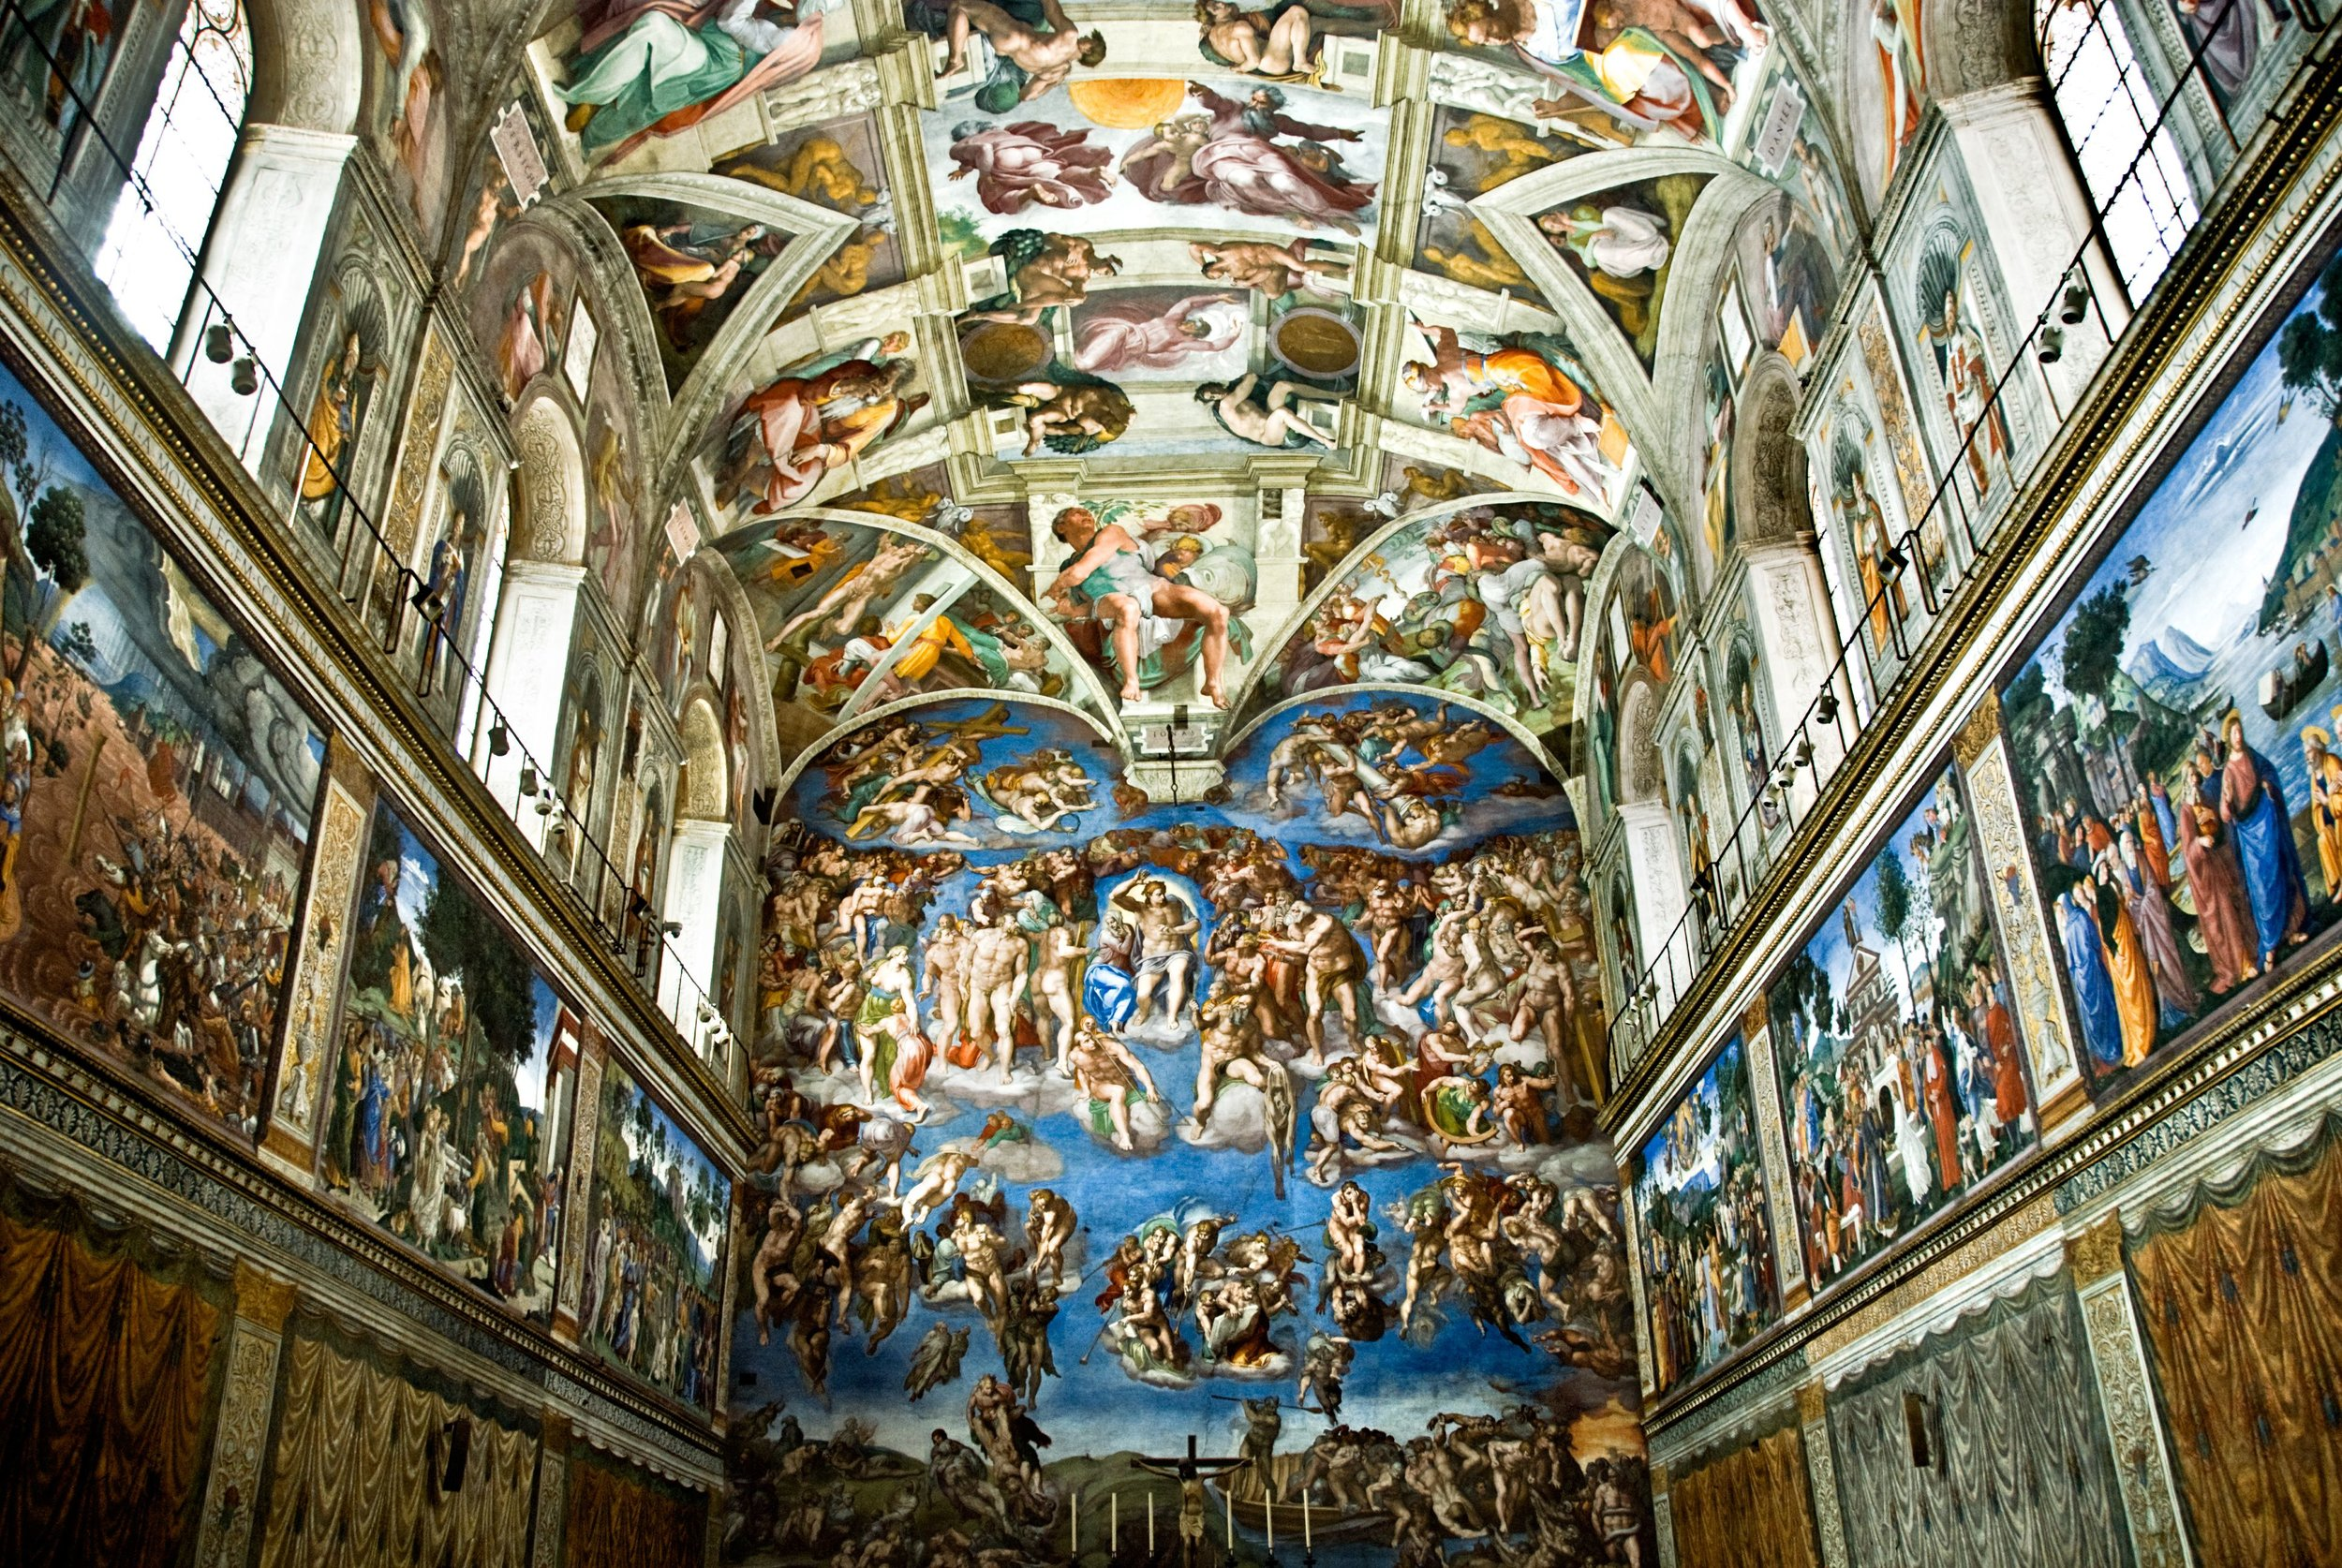 Gazing up in awe is the only way to see and appreciate the artisanship of the Sistine Chapel.